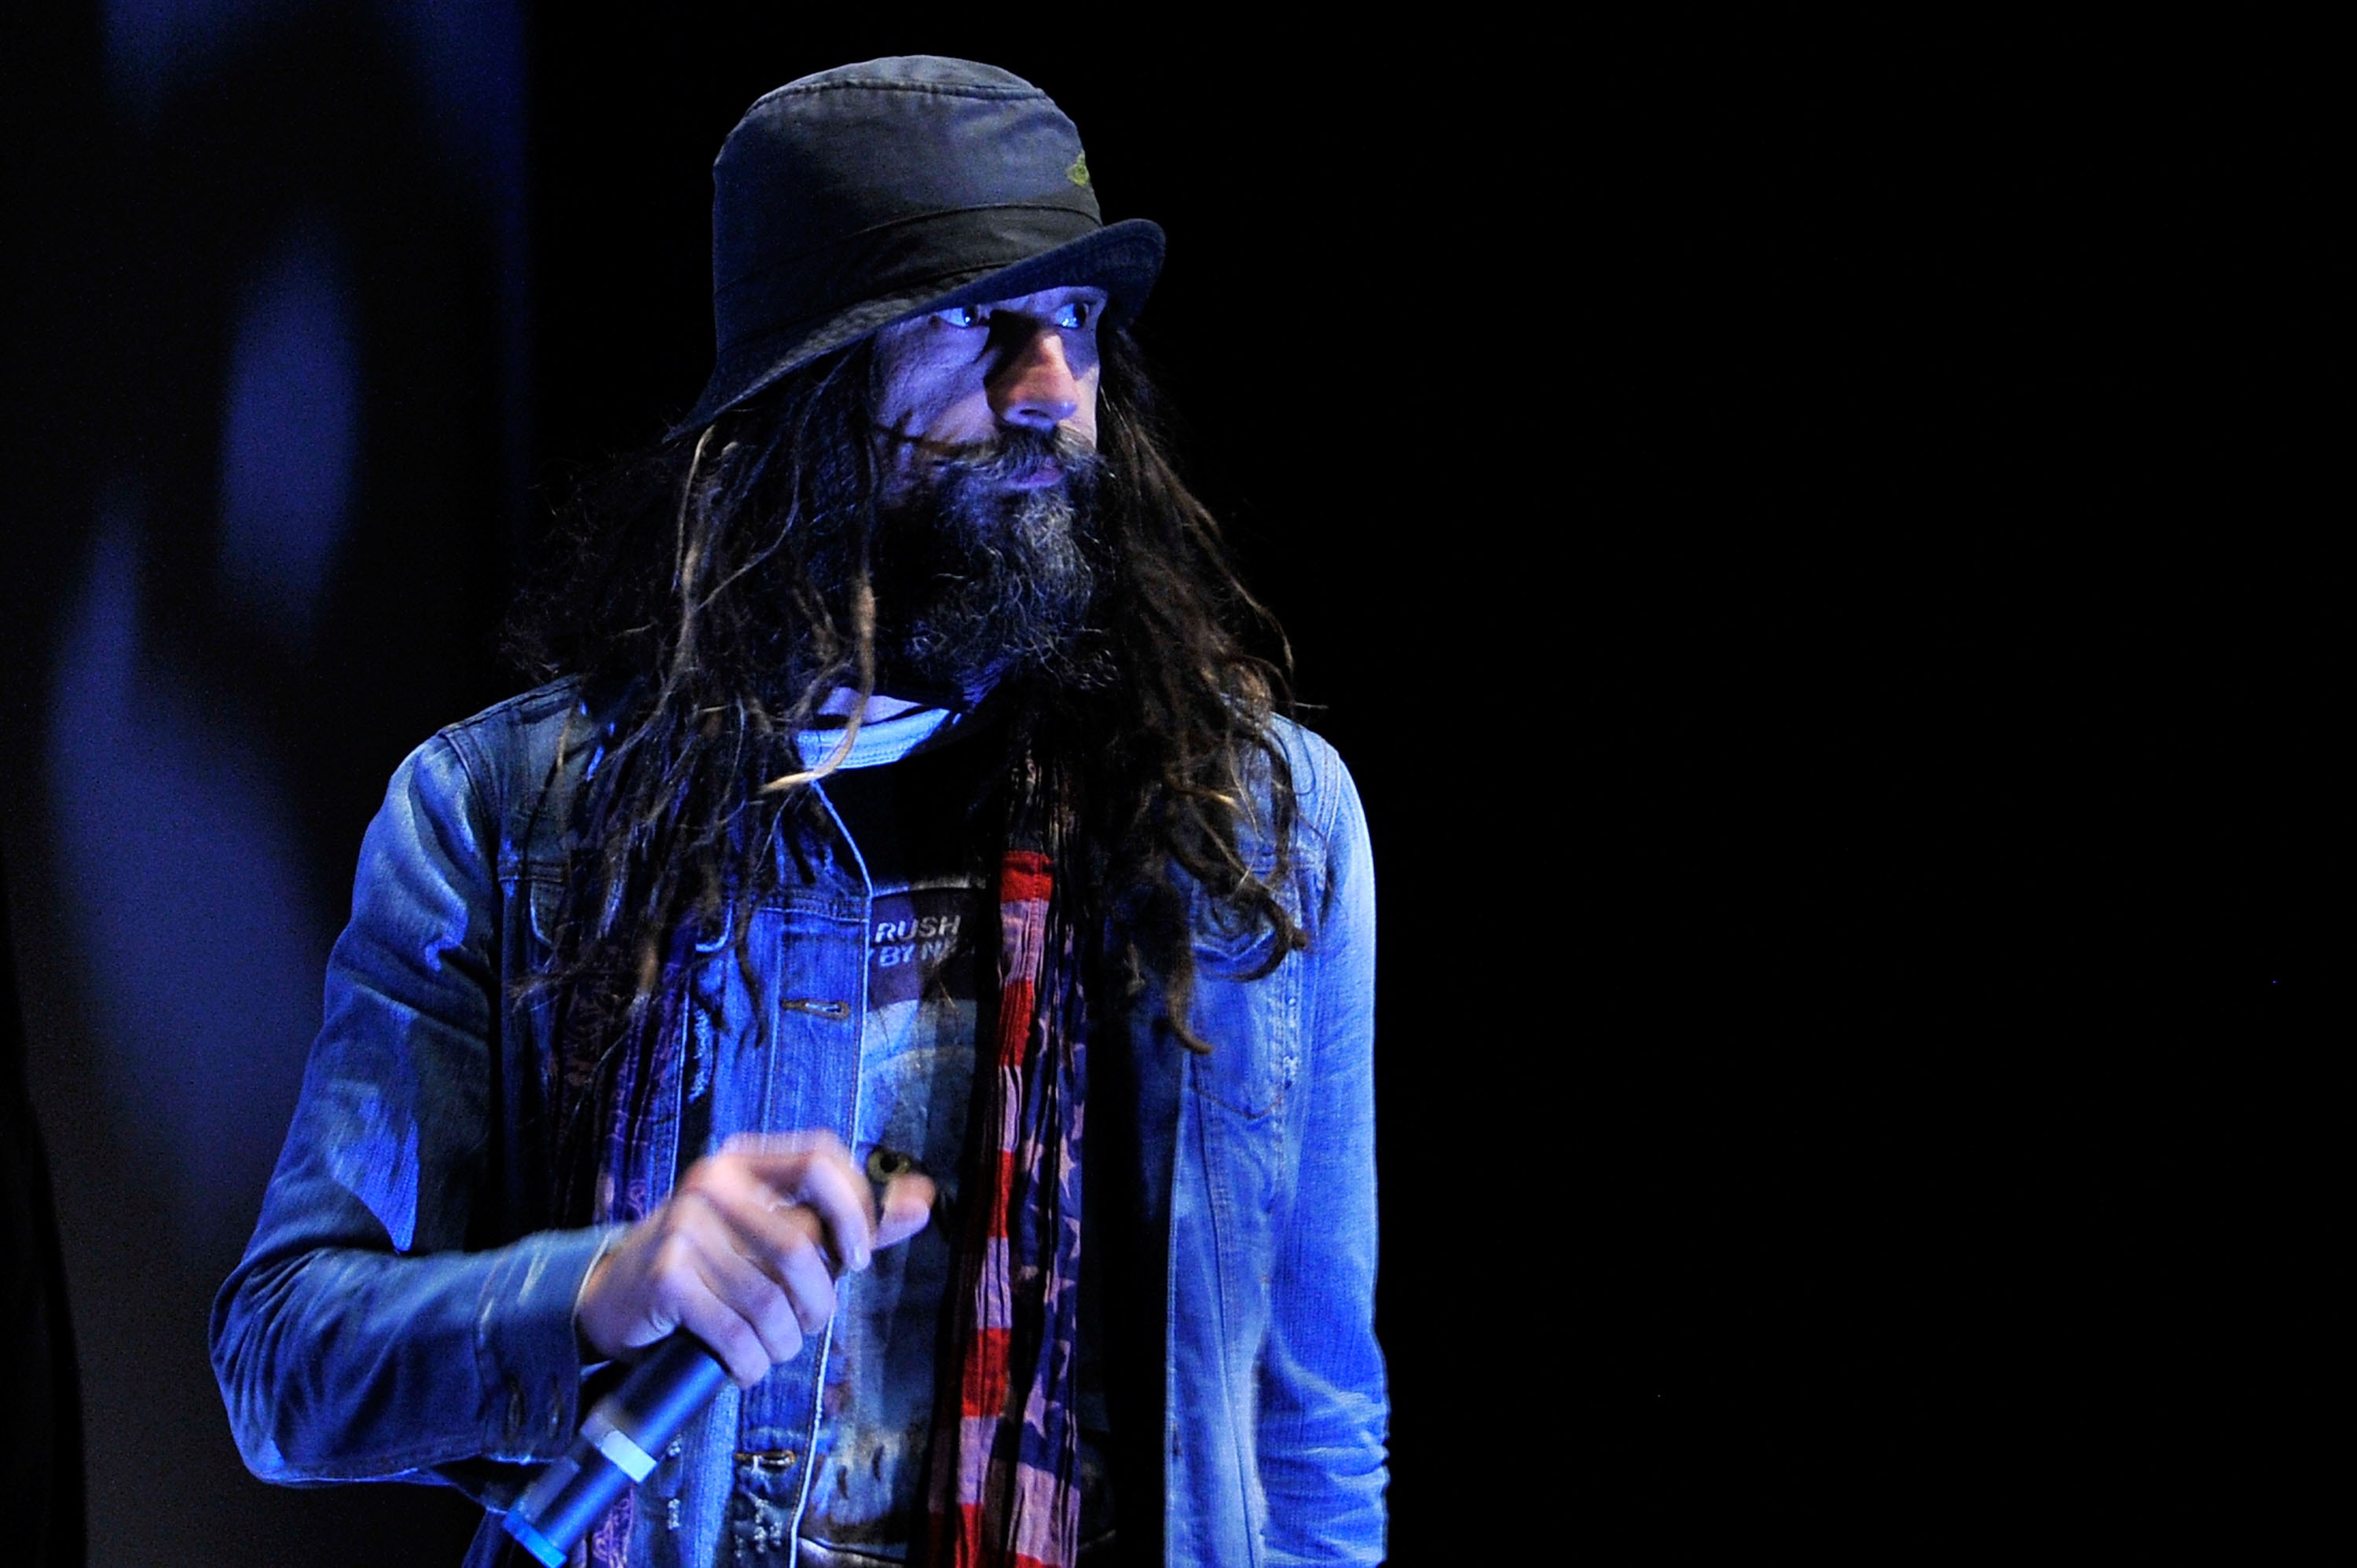 TORONTO, ON - SEPTEMBER 10: Filmmaker Rob Zombie speaks at 'The Lords Of Salem' Premiere during the 2012 Toronto International Film Festival at the Ryerson Theatre on September 10, 2012 in Toronto, Canada.